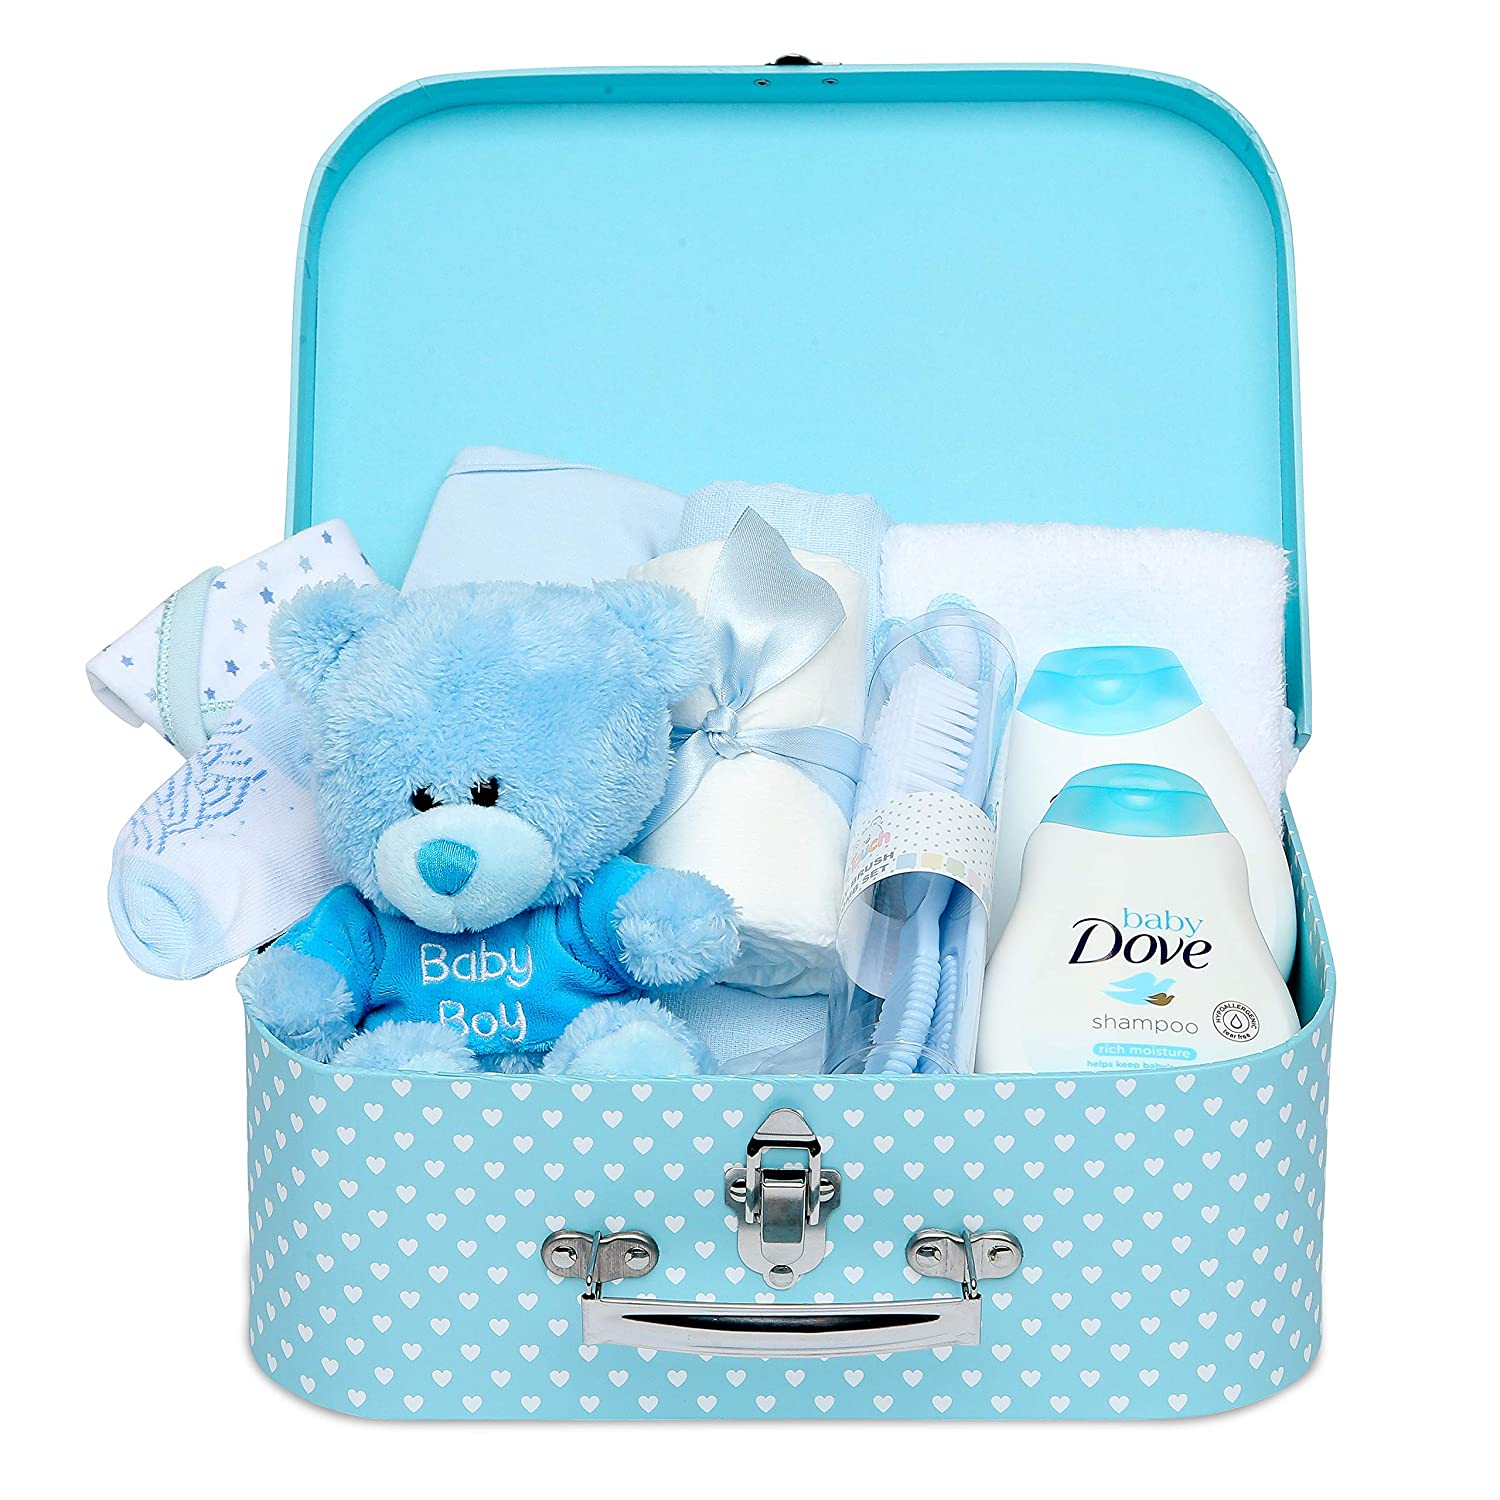 Teddy and Gifts Baby Box Shop Gift Set for New Baby Boy with Baby Clothes